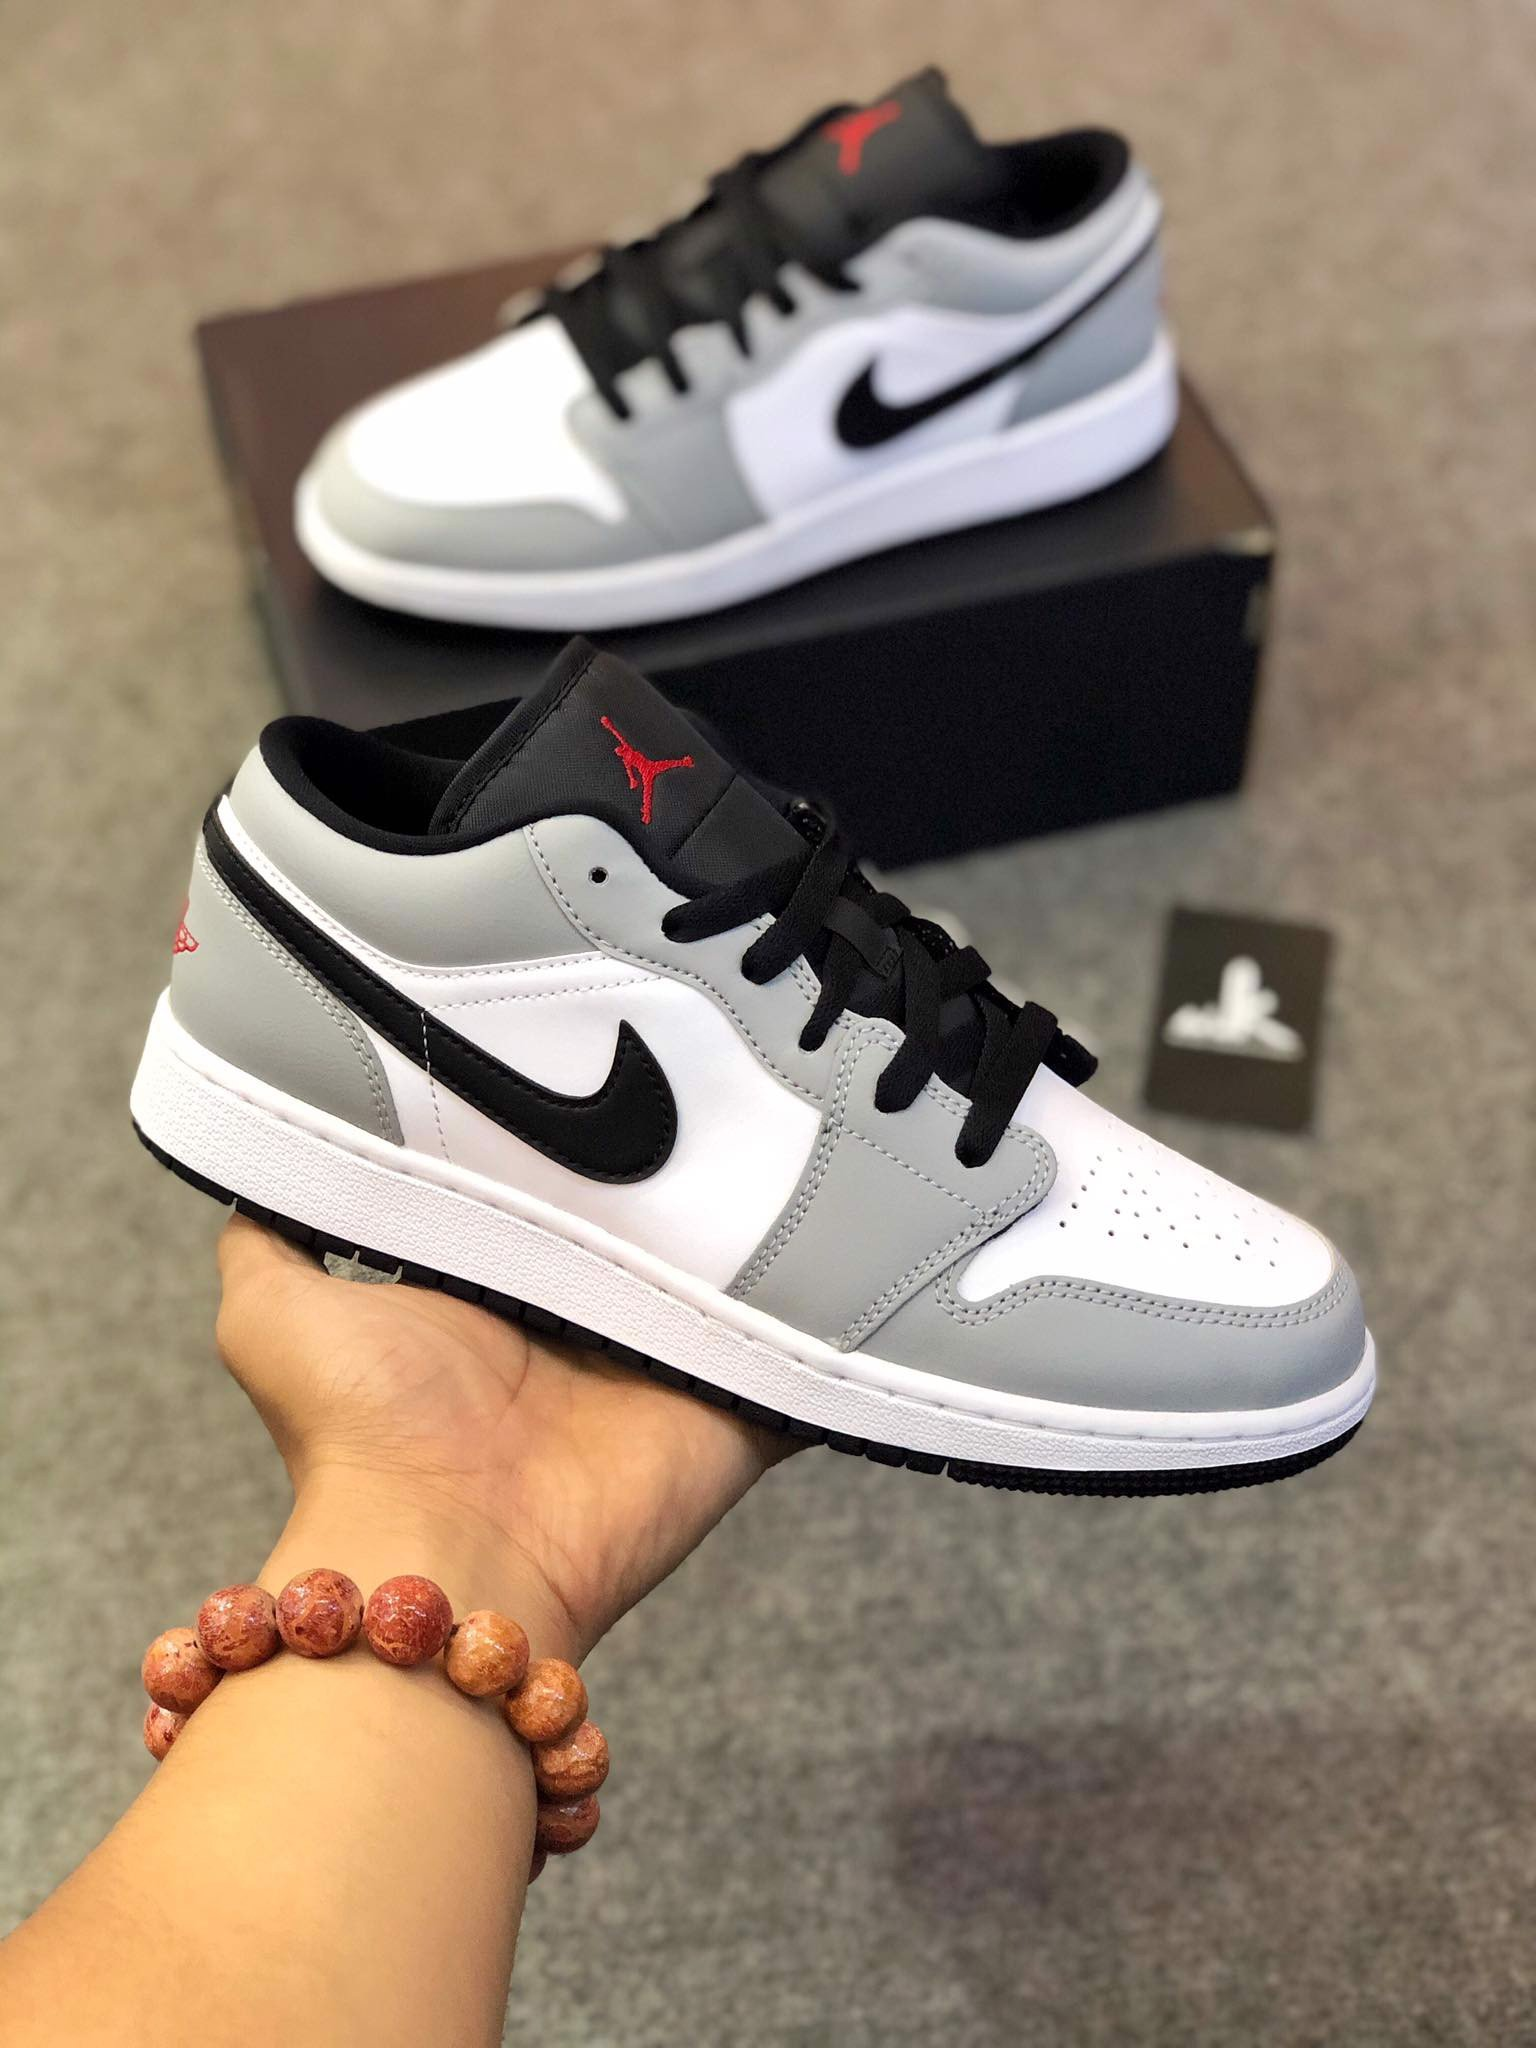 553558-030 Jordan 1 Low Light Smoke Grey